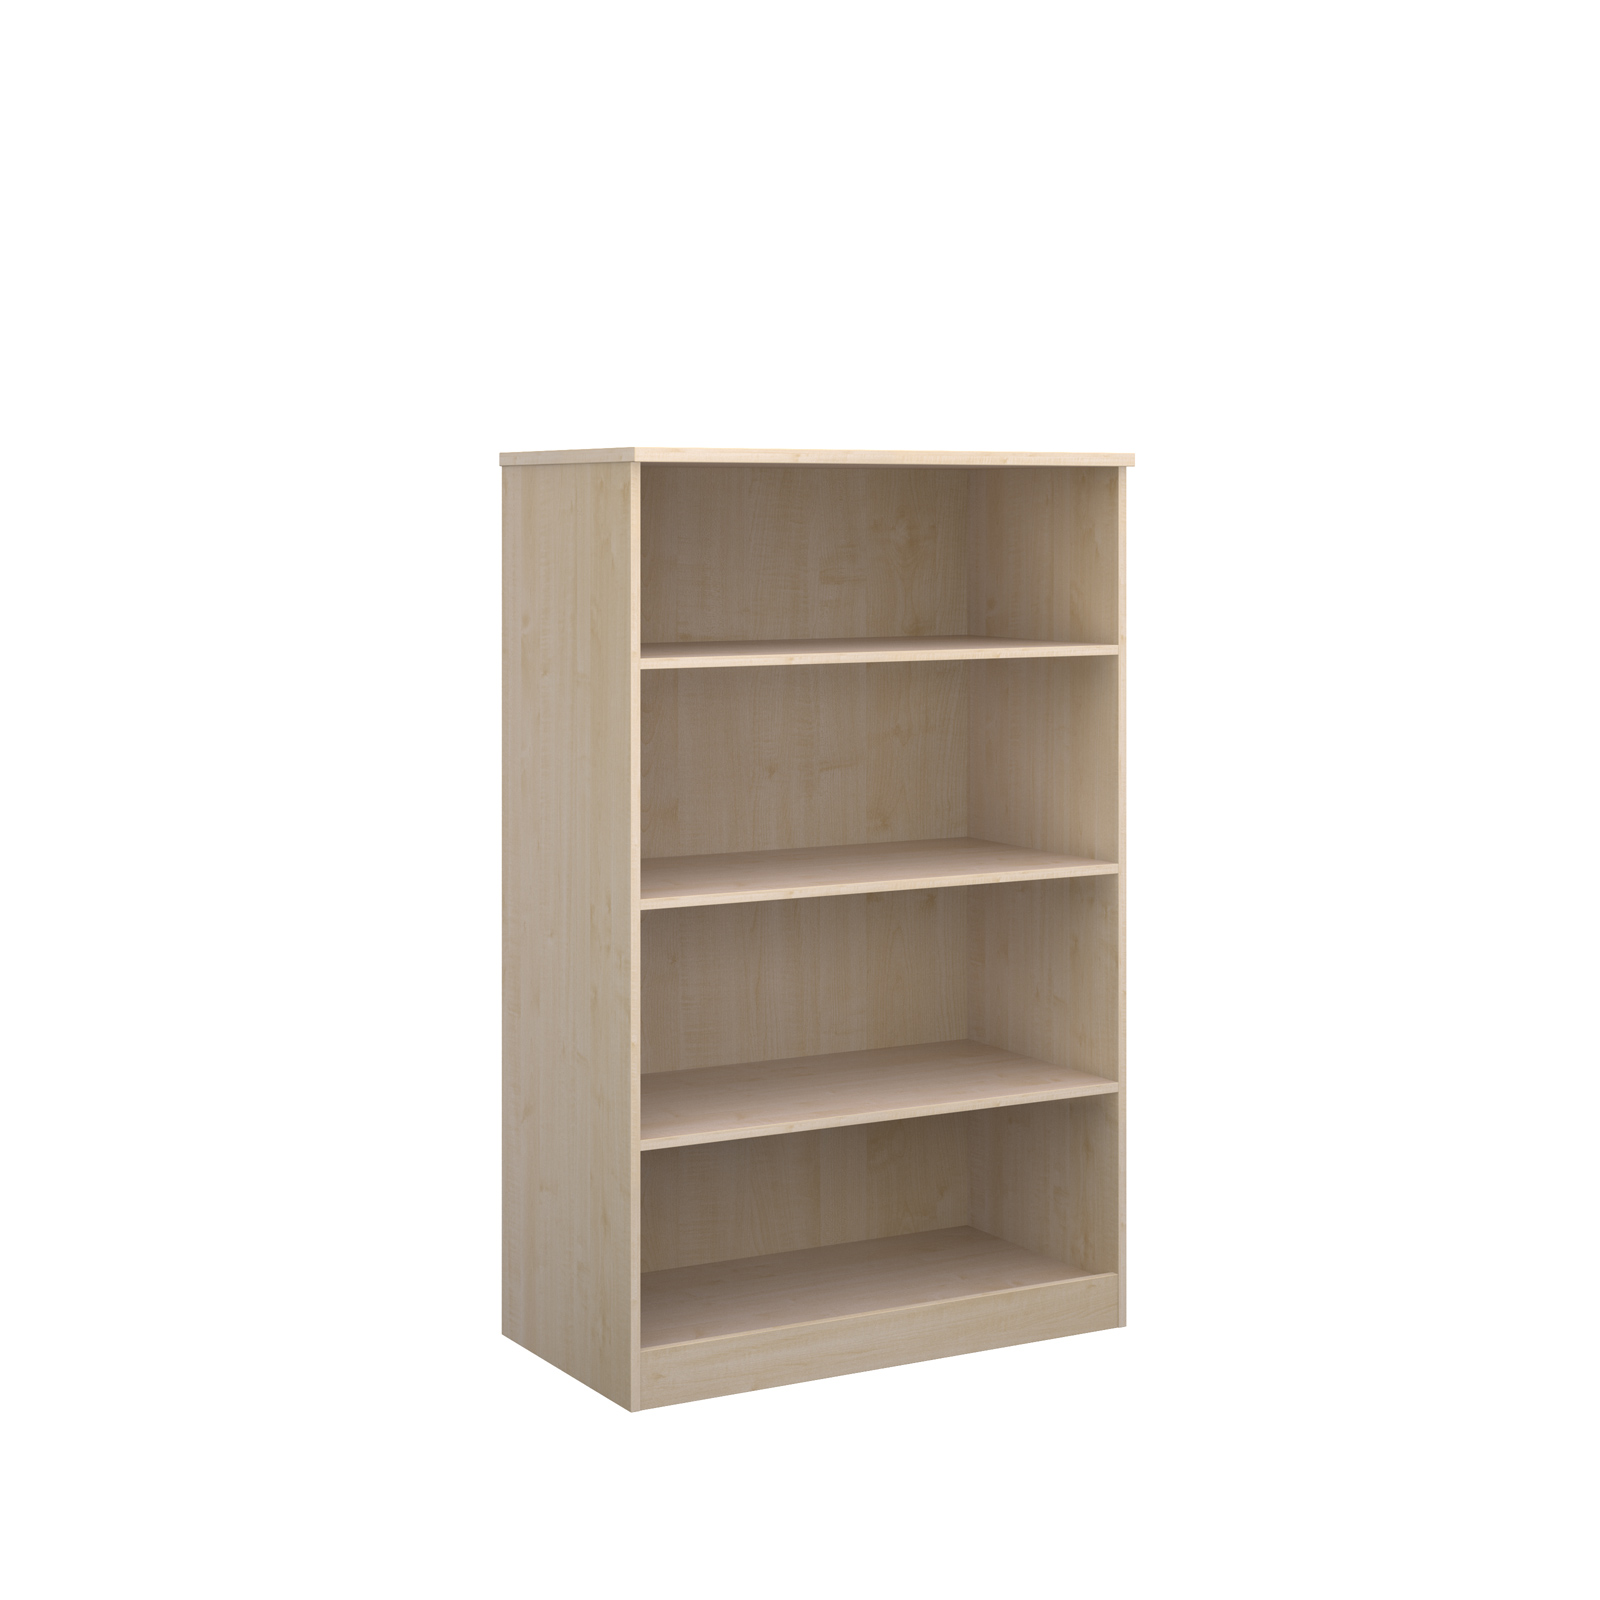 Deluxe bookcase 1600mm high in maple